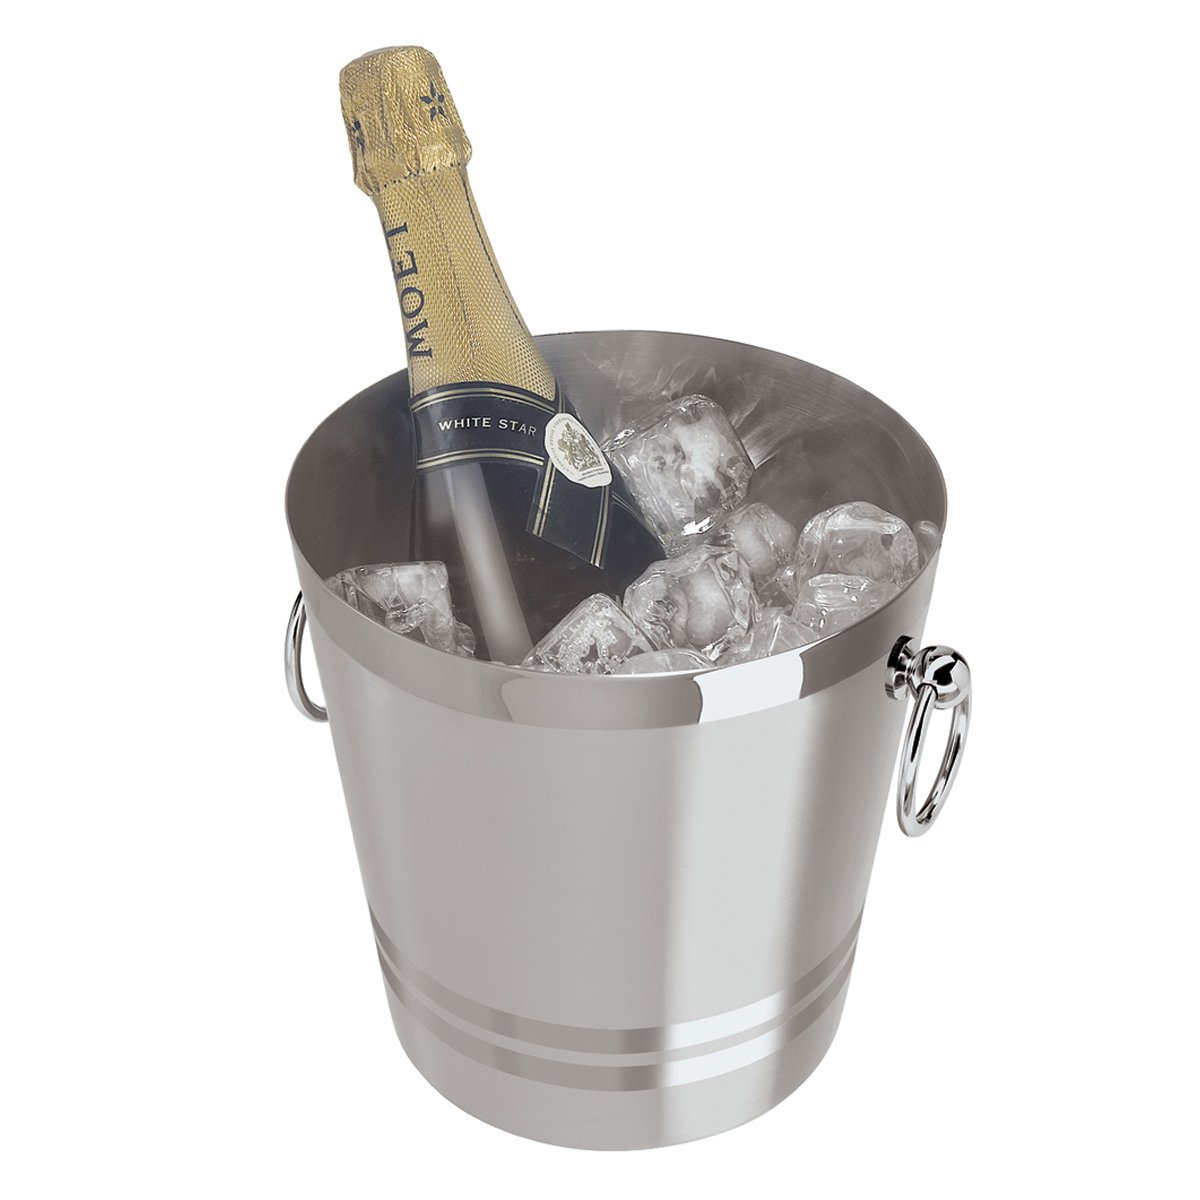 Oggi 7041.0 7041 Stainless Steel Champagne Bucket, 4-1/4-Quart